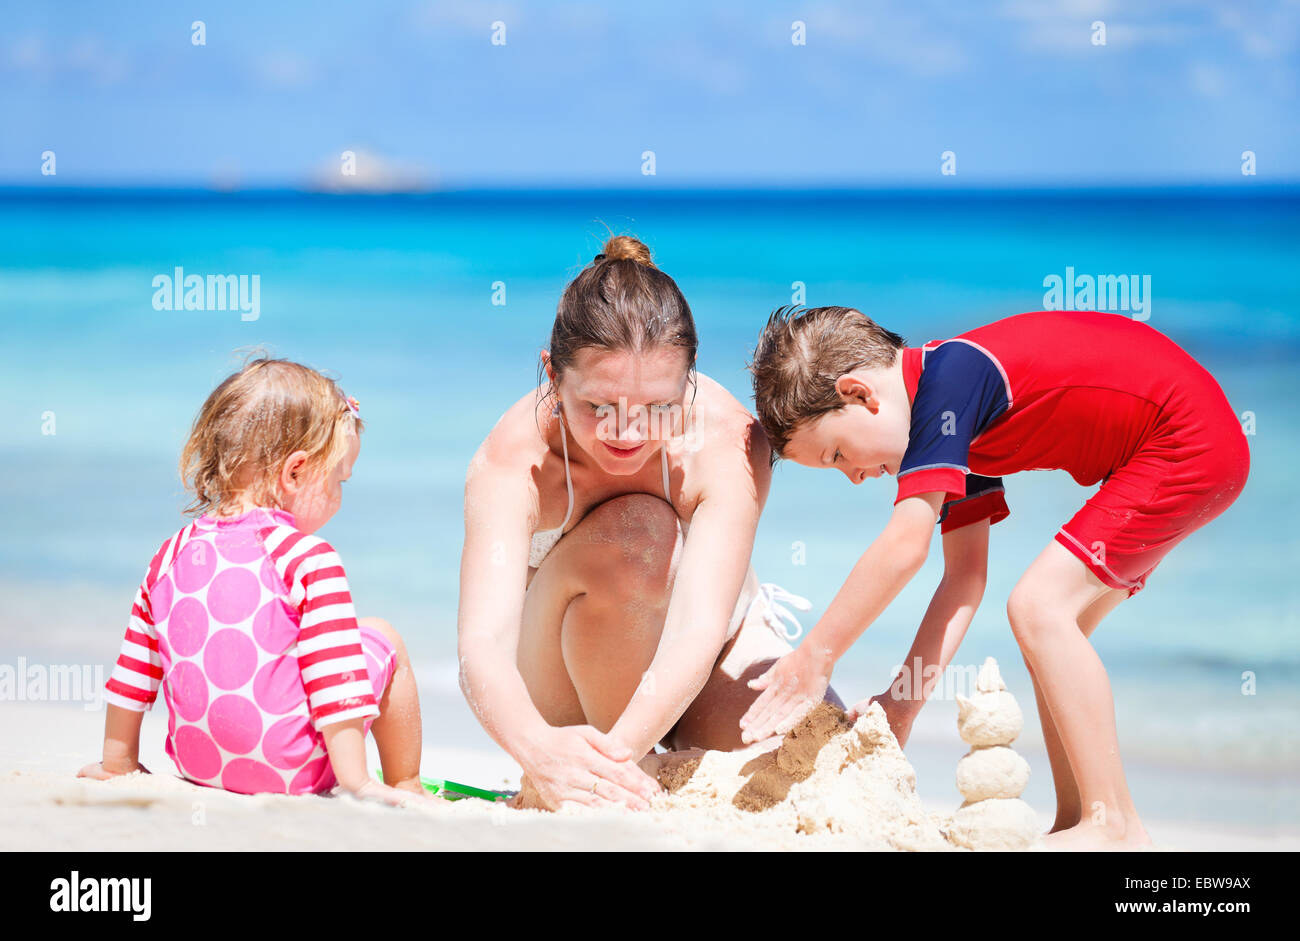 a young mother and her two children building a sand castle on sandy beach Stock Photo